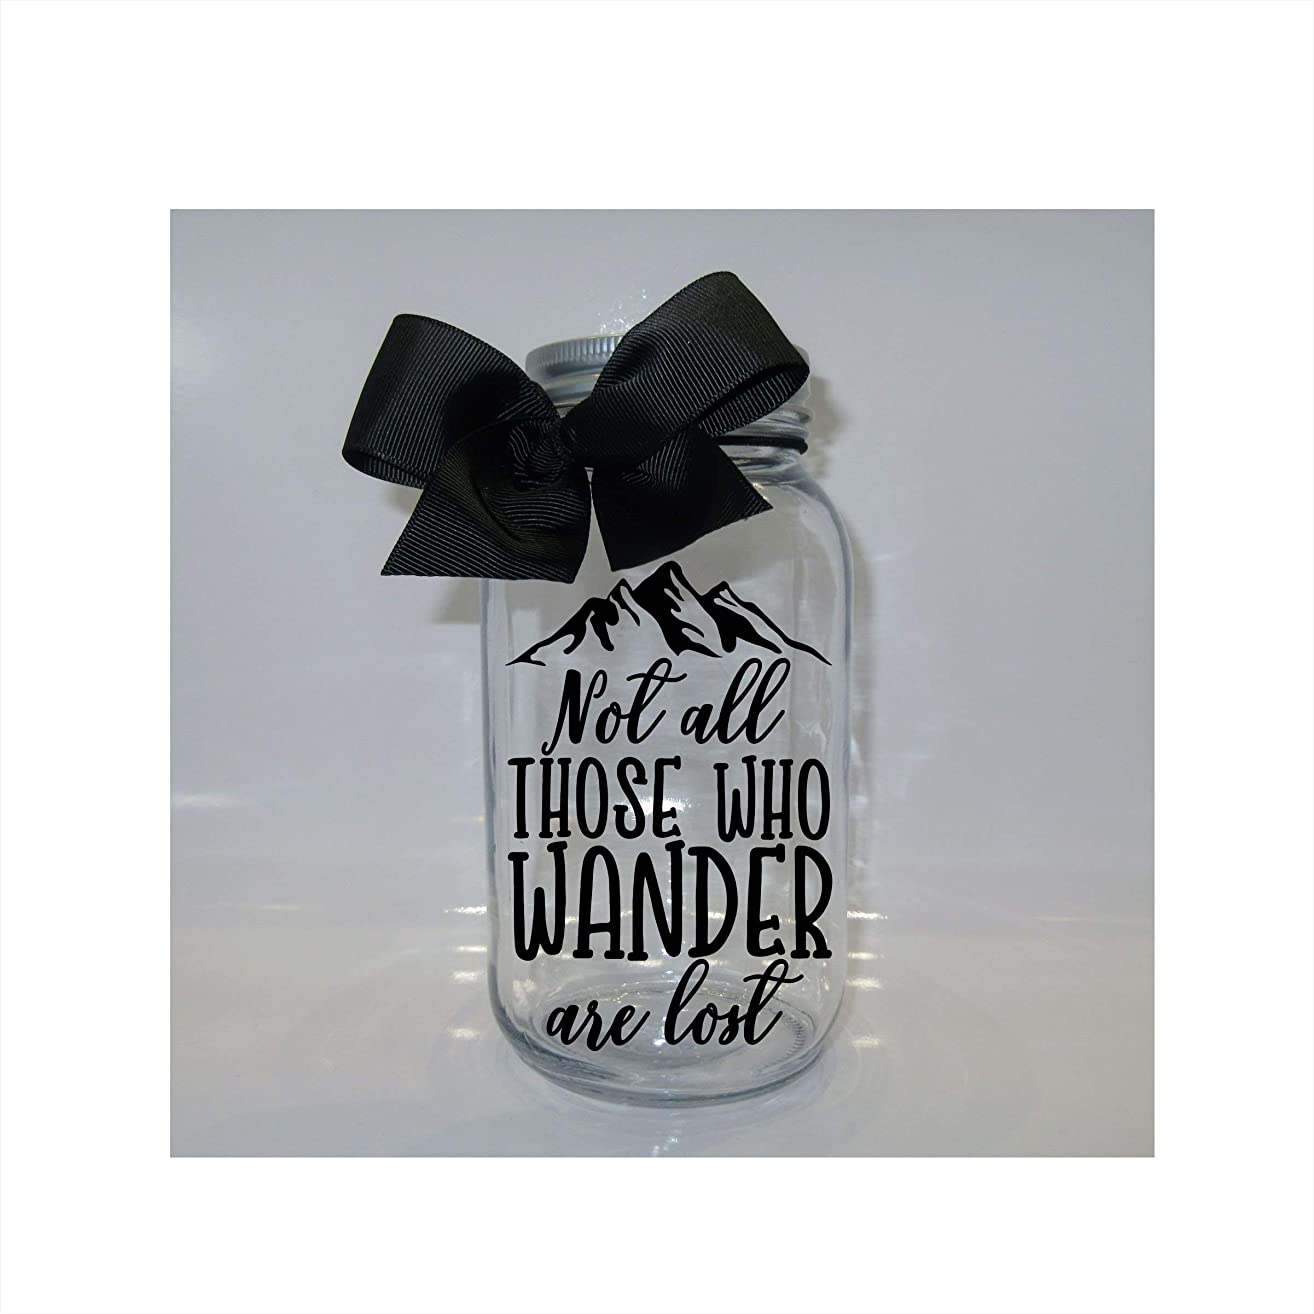 Not All Those Who Wander Are Lost Fund Mason Jar Bank - Coin Slot Lid - Available in 3 Sizes